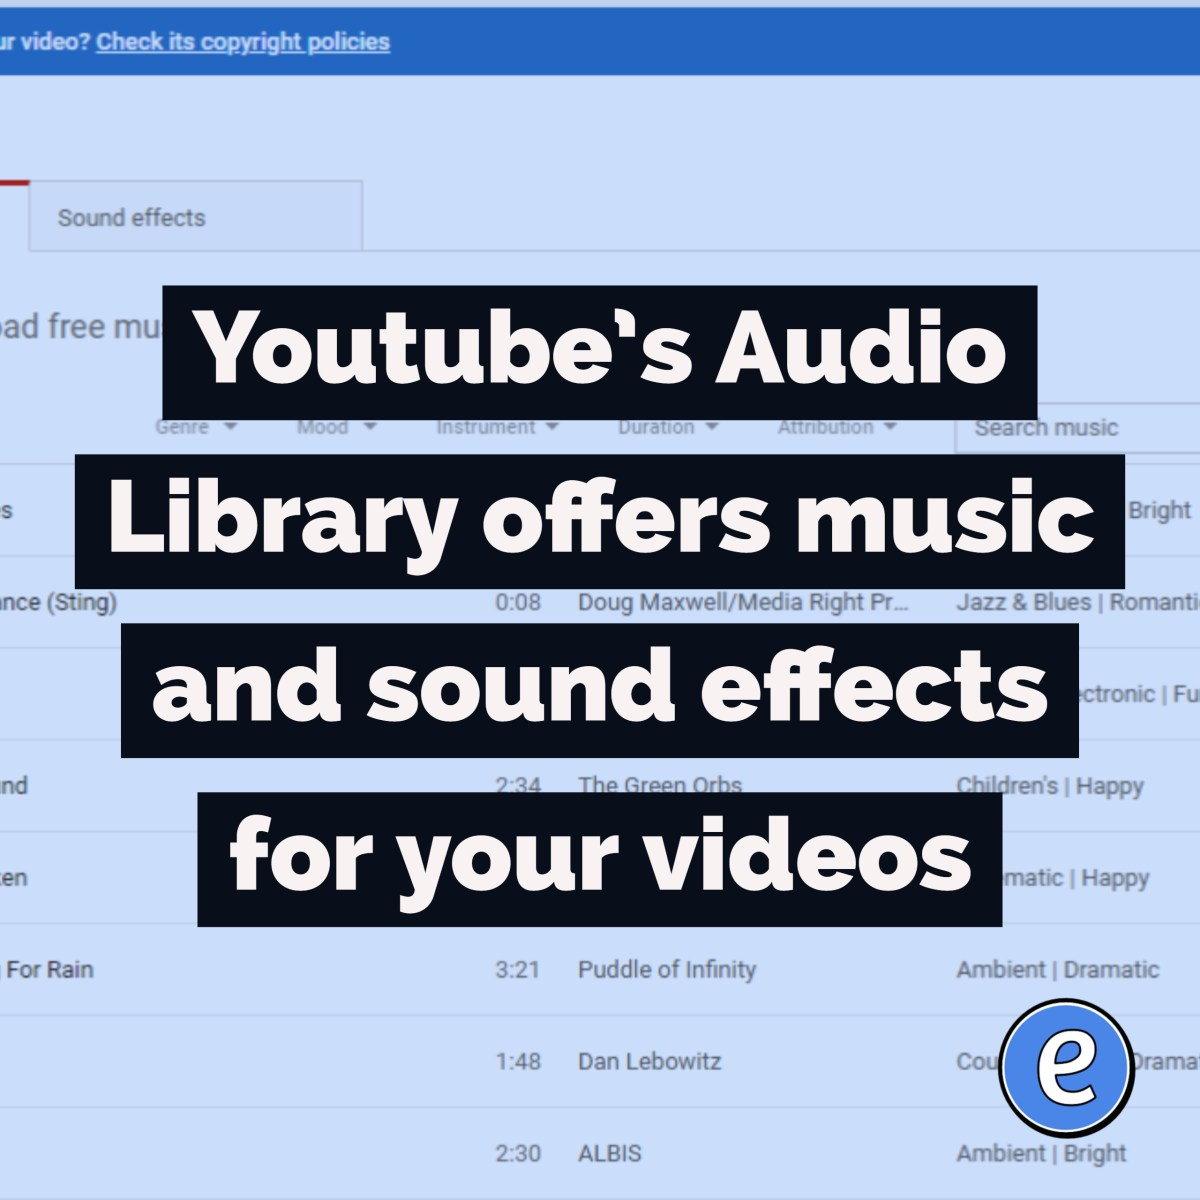 Youtube's Audio Library offers music and sound effects for your videos